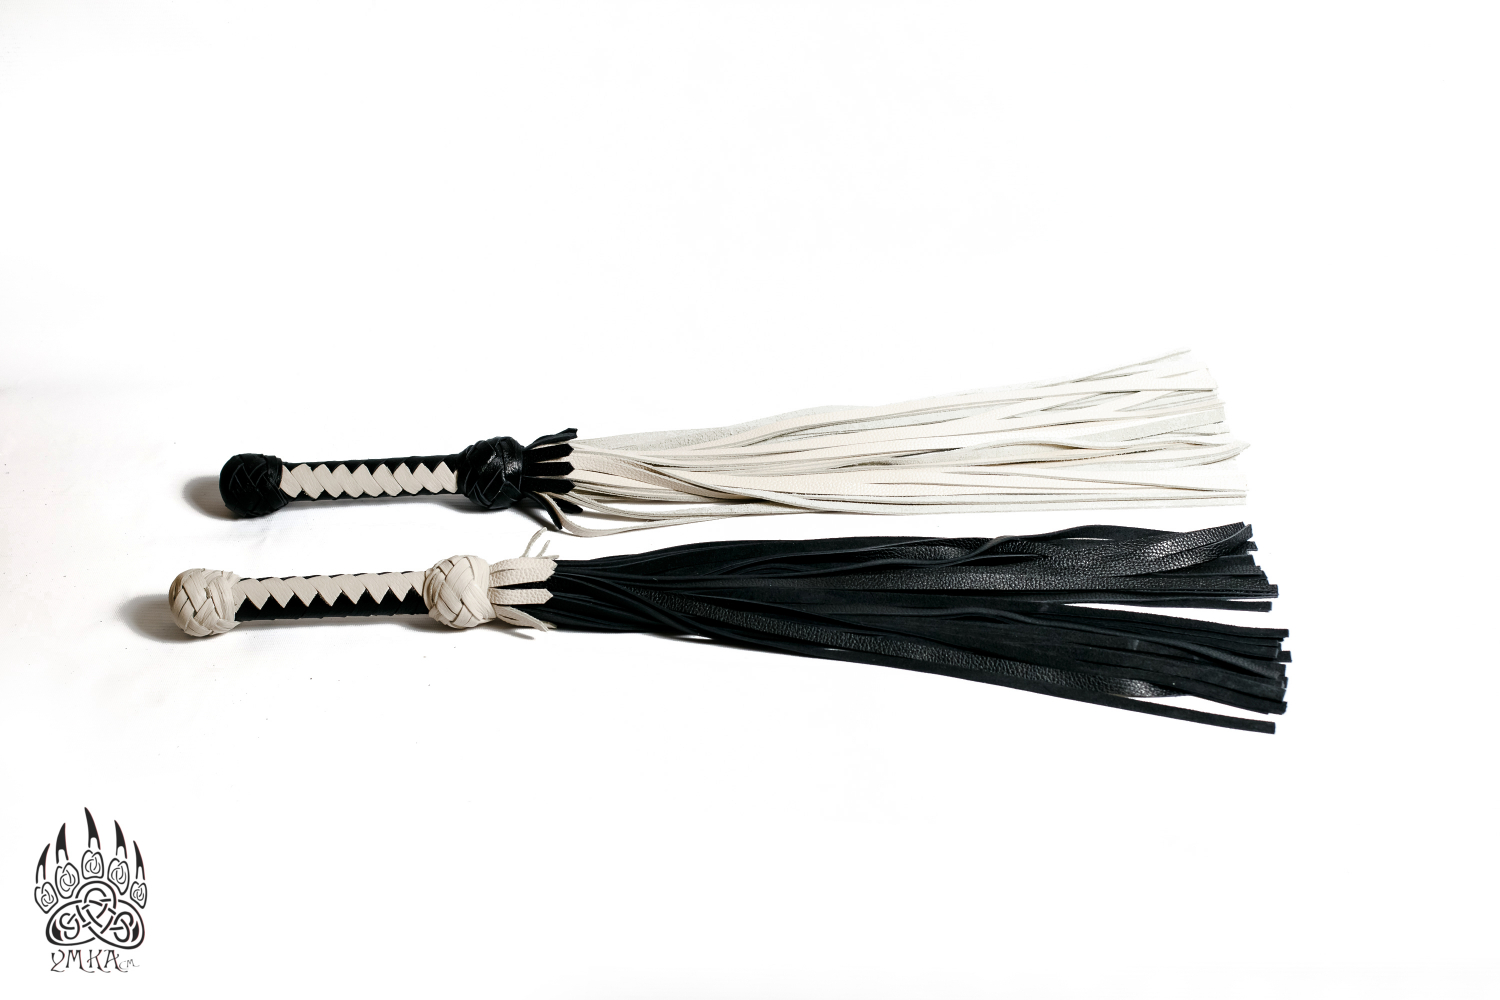 Flogger: Types and Ways to Use